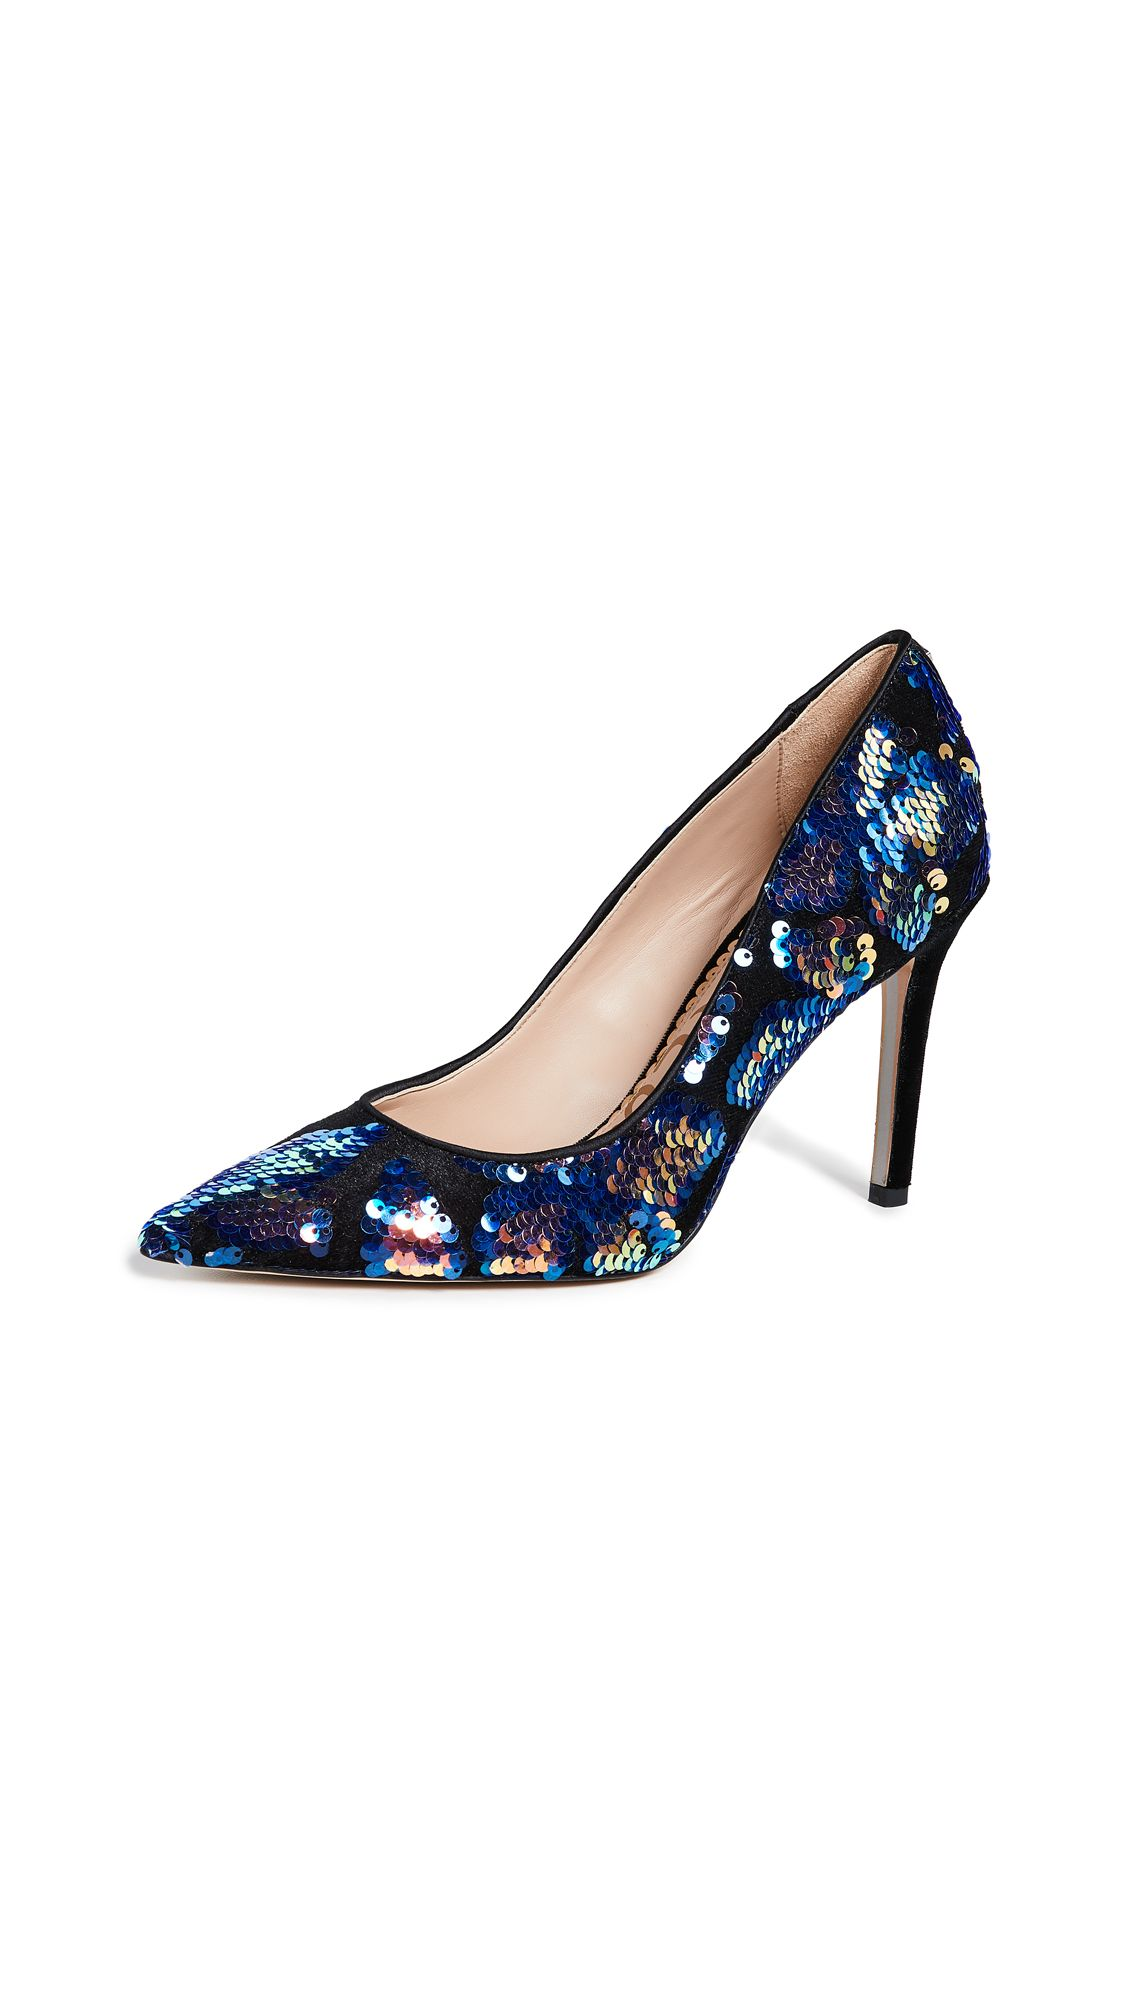 4b200f285 Hazel Pumps by Sam Edelman in Black Multi in 2019 | LUX Woman ...